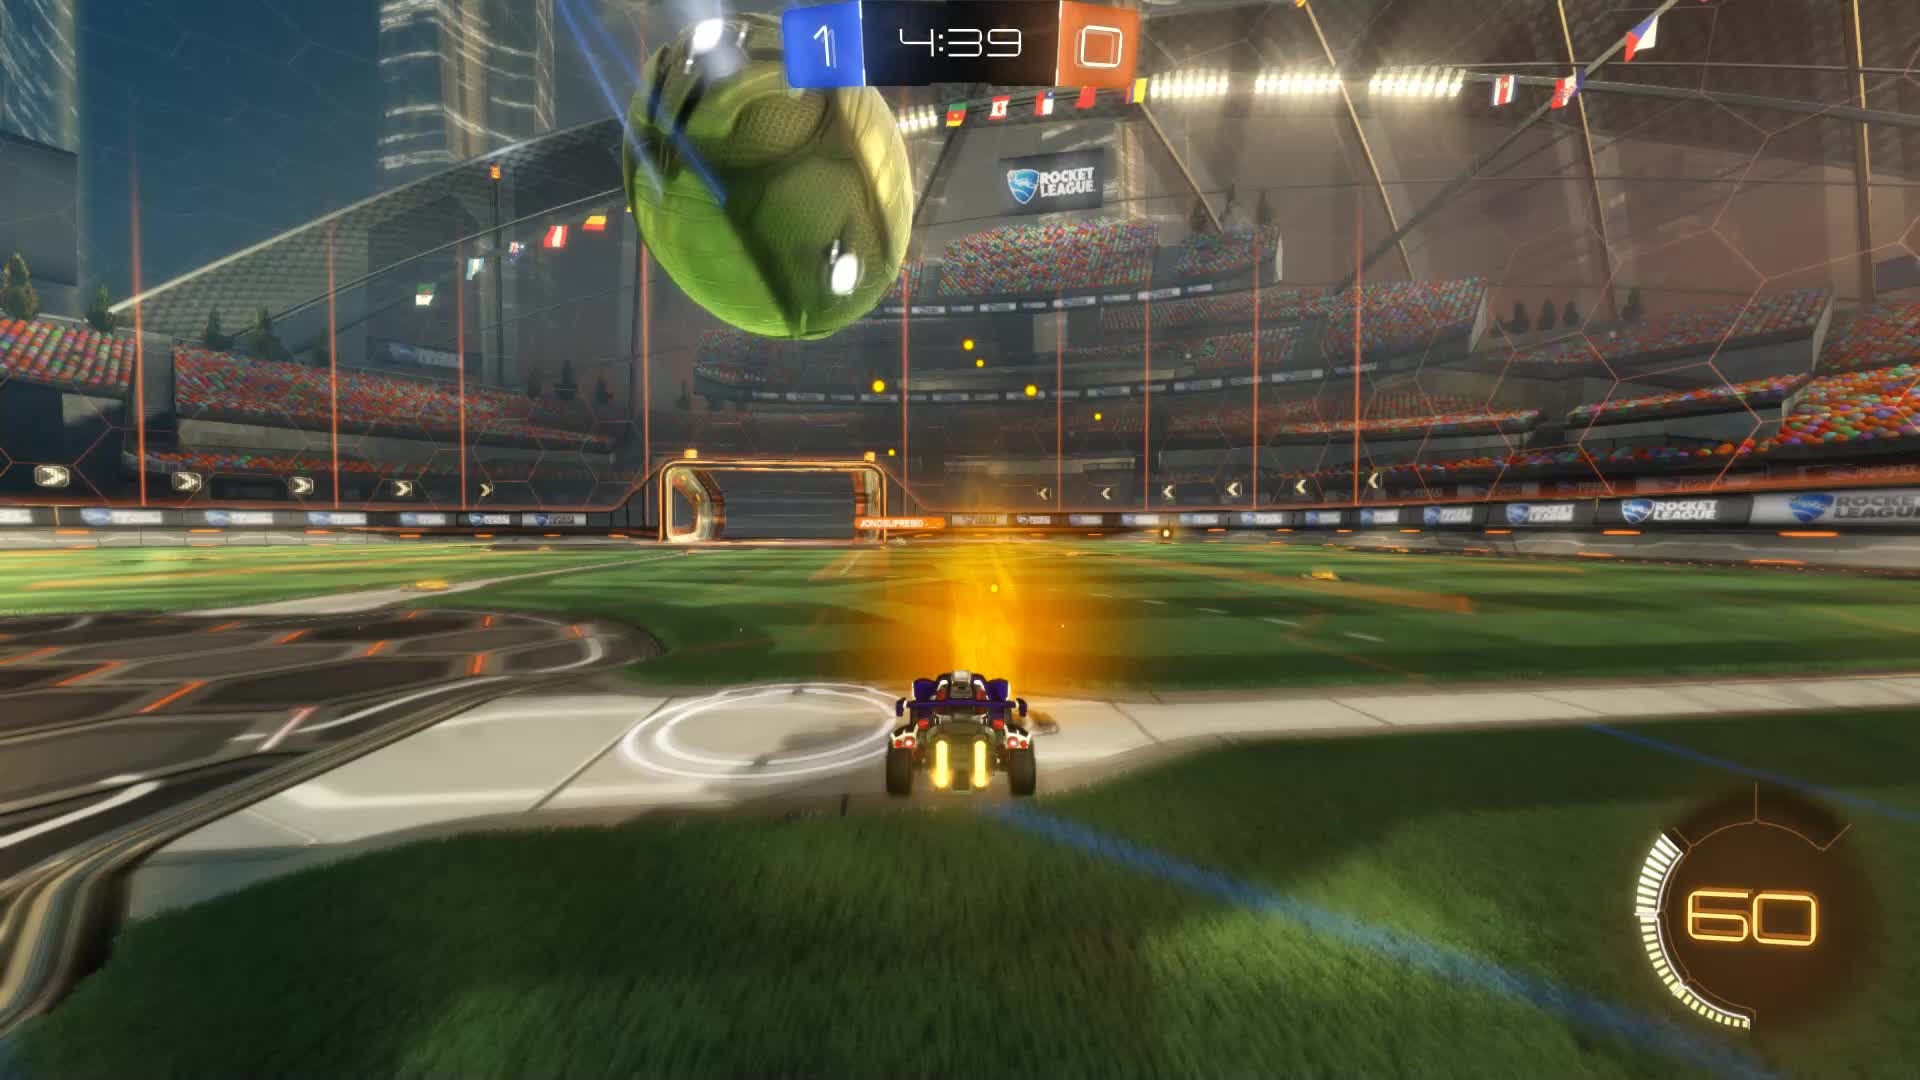 Gif Your Game, GifYourGame, Goal, Rocket League, RocketLeague, Scooby-Doo, Goal 2: Scooby-Doo GIFs